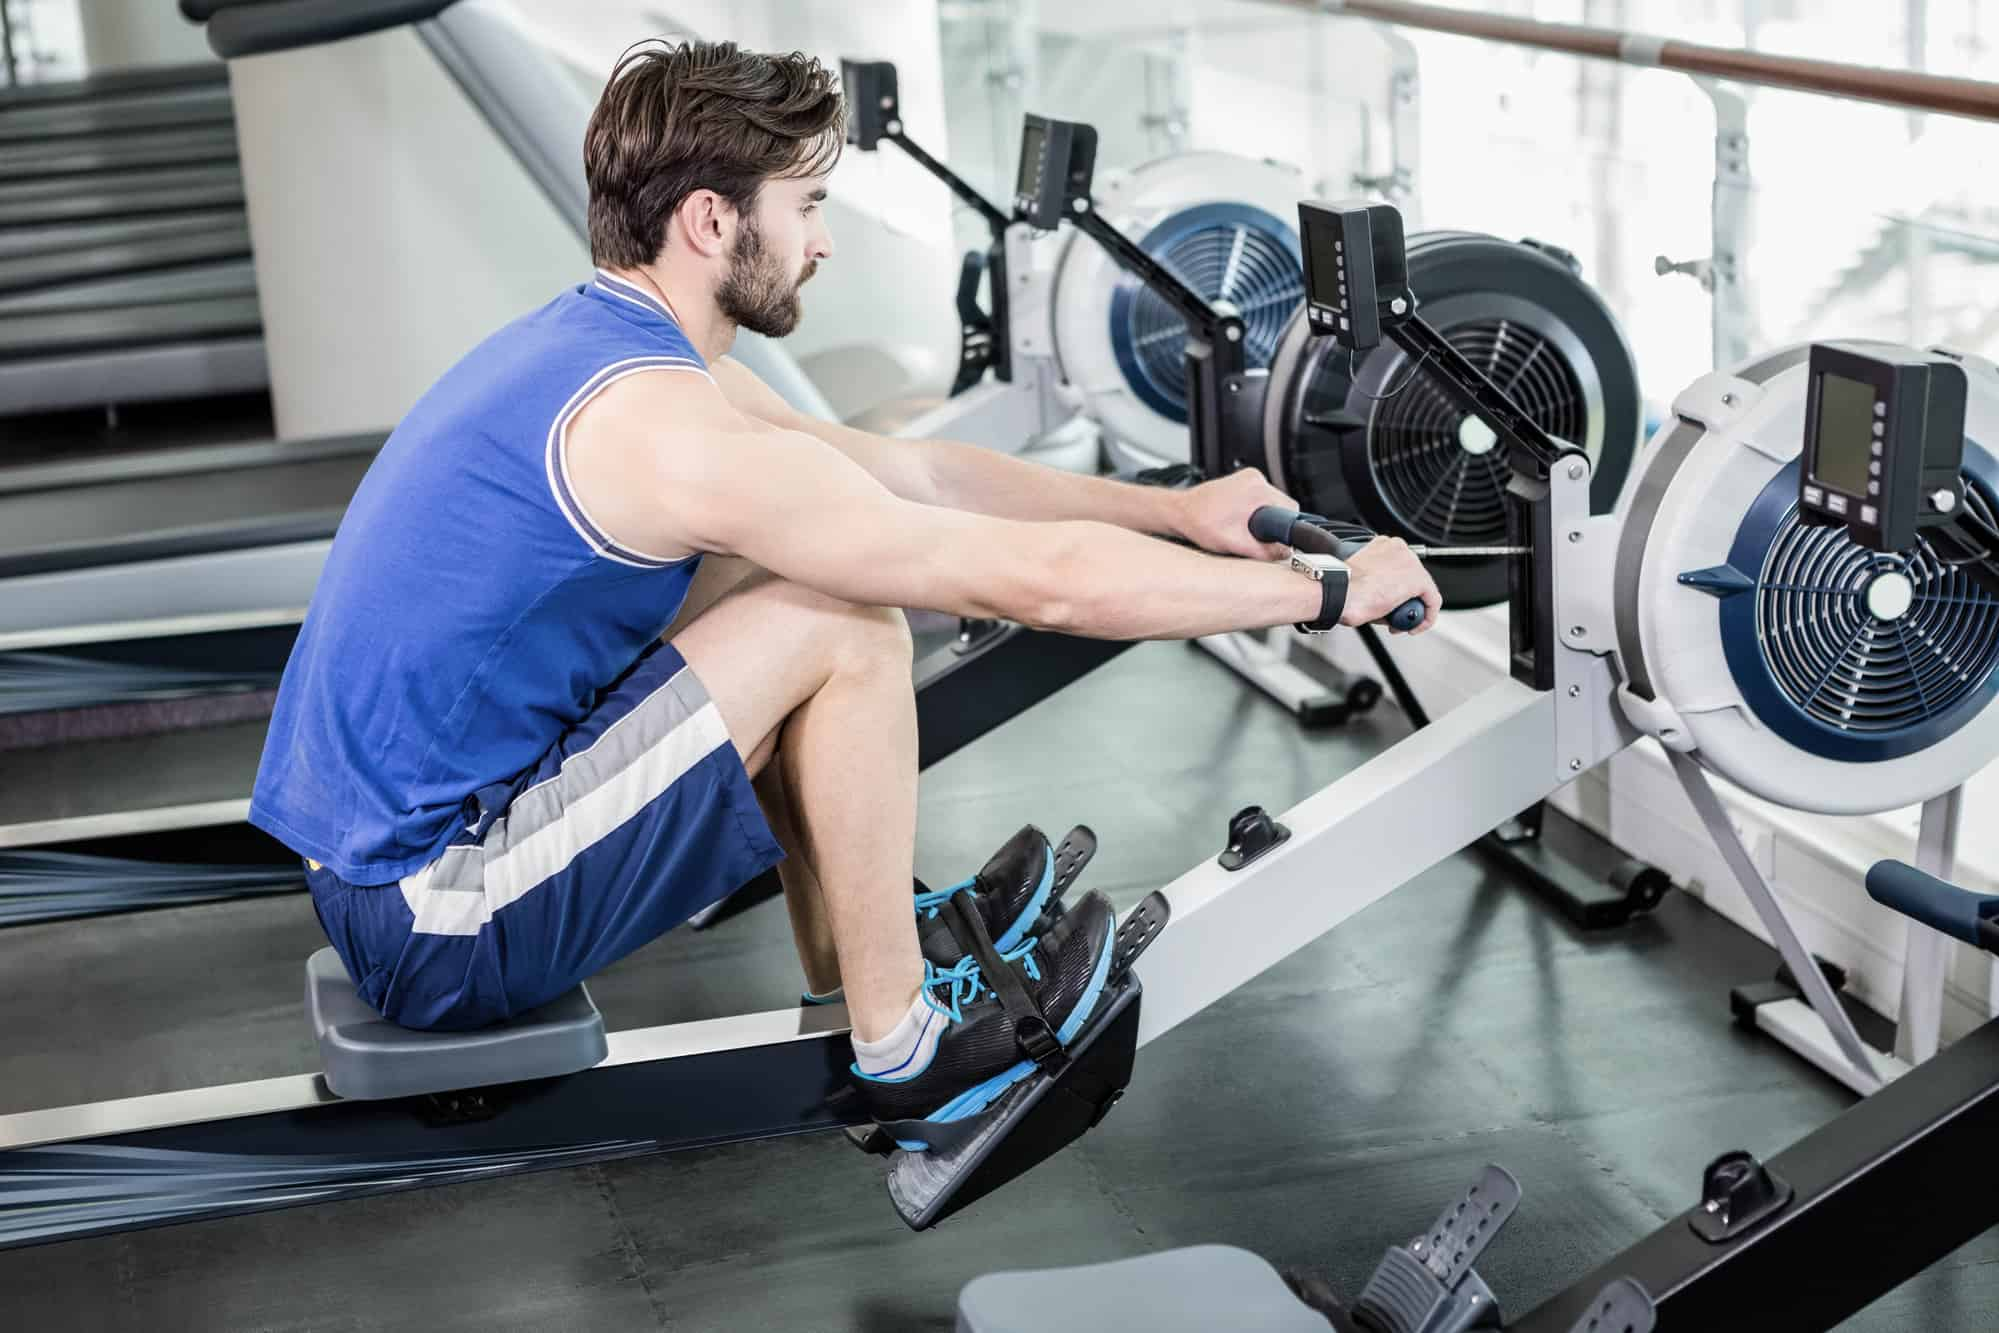 rowing machine back pain - is it safe?